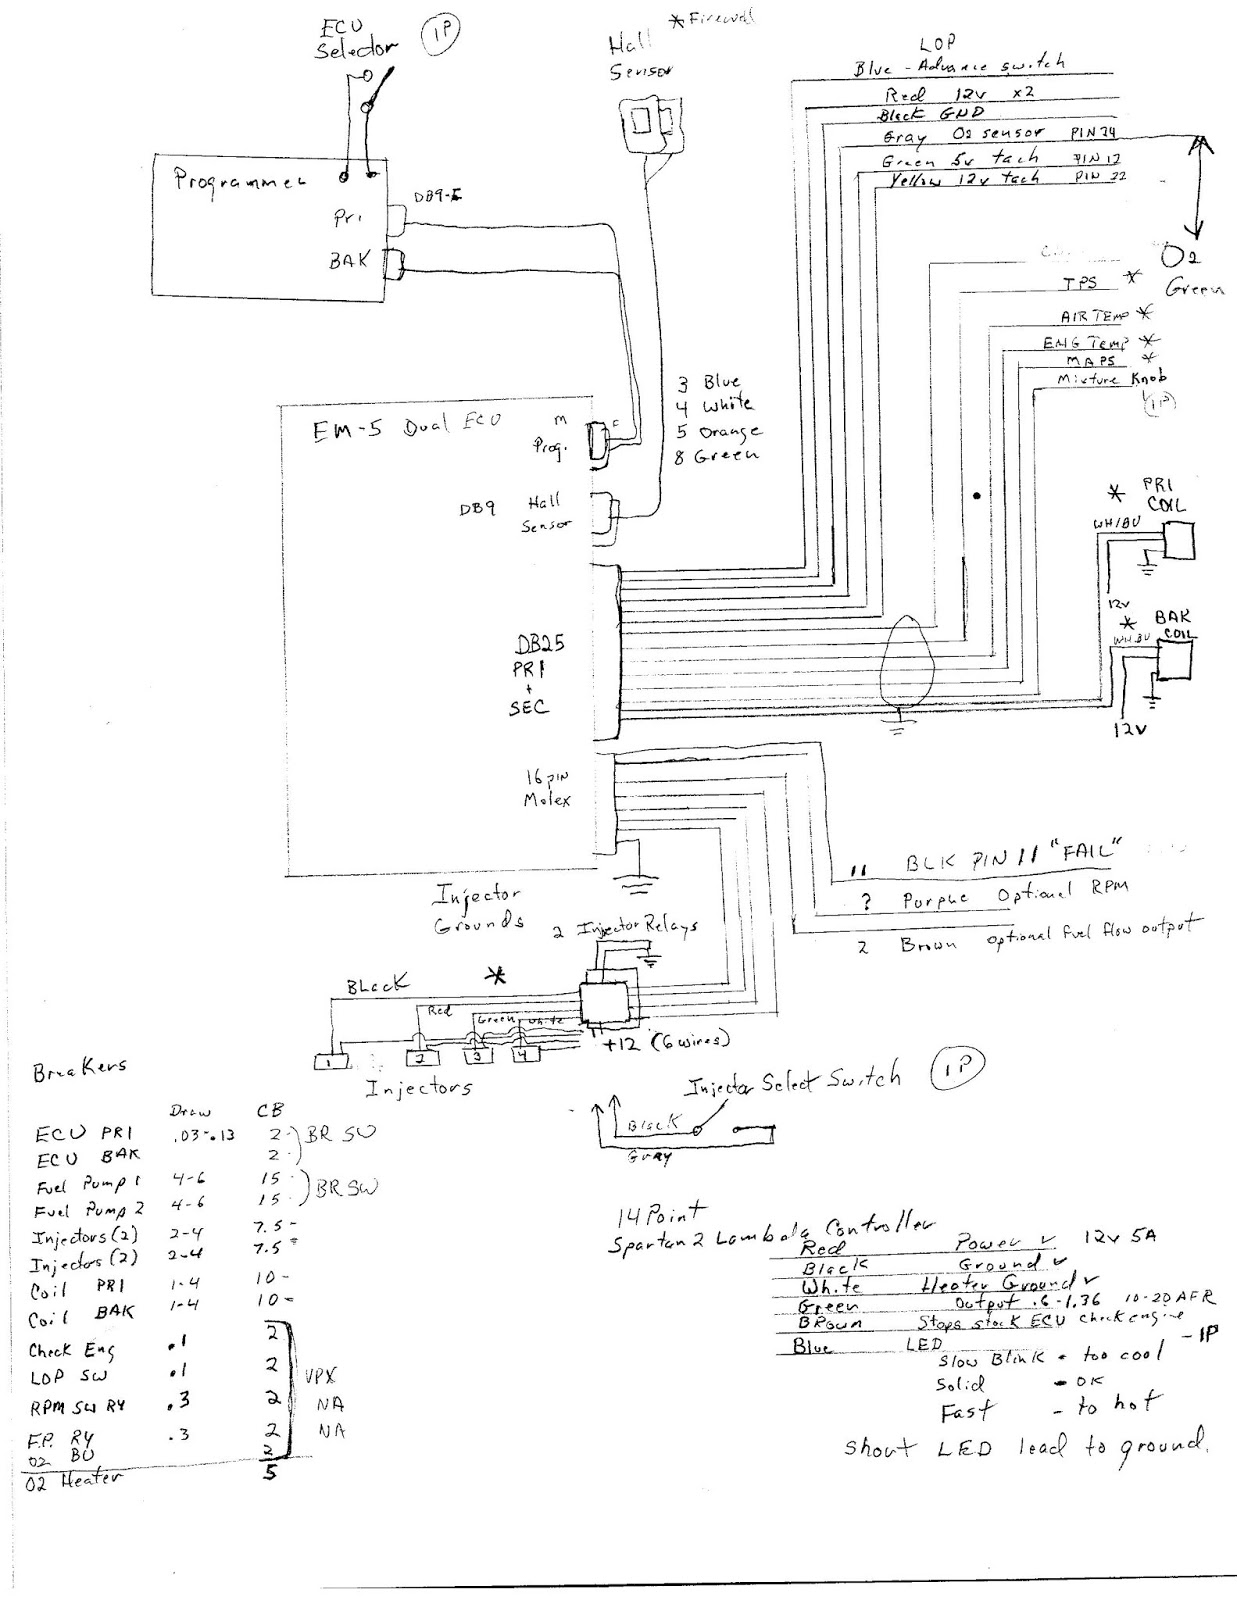 hight resolution of pin assignments for firewall bulkhead connectors and other electrical wiring info